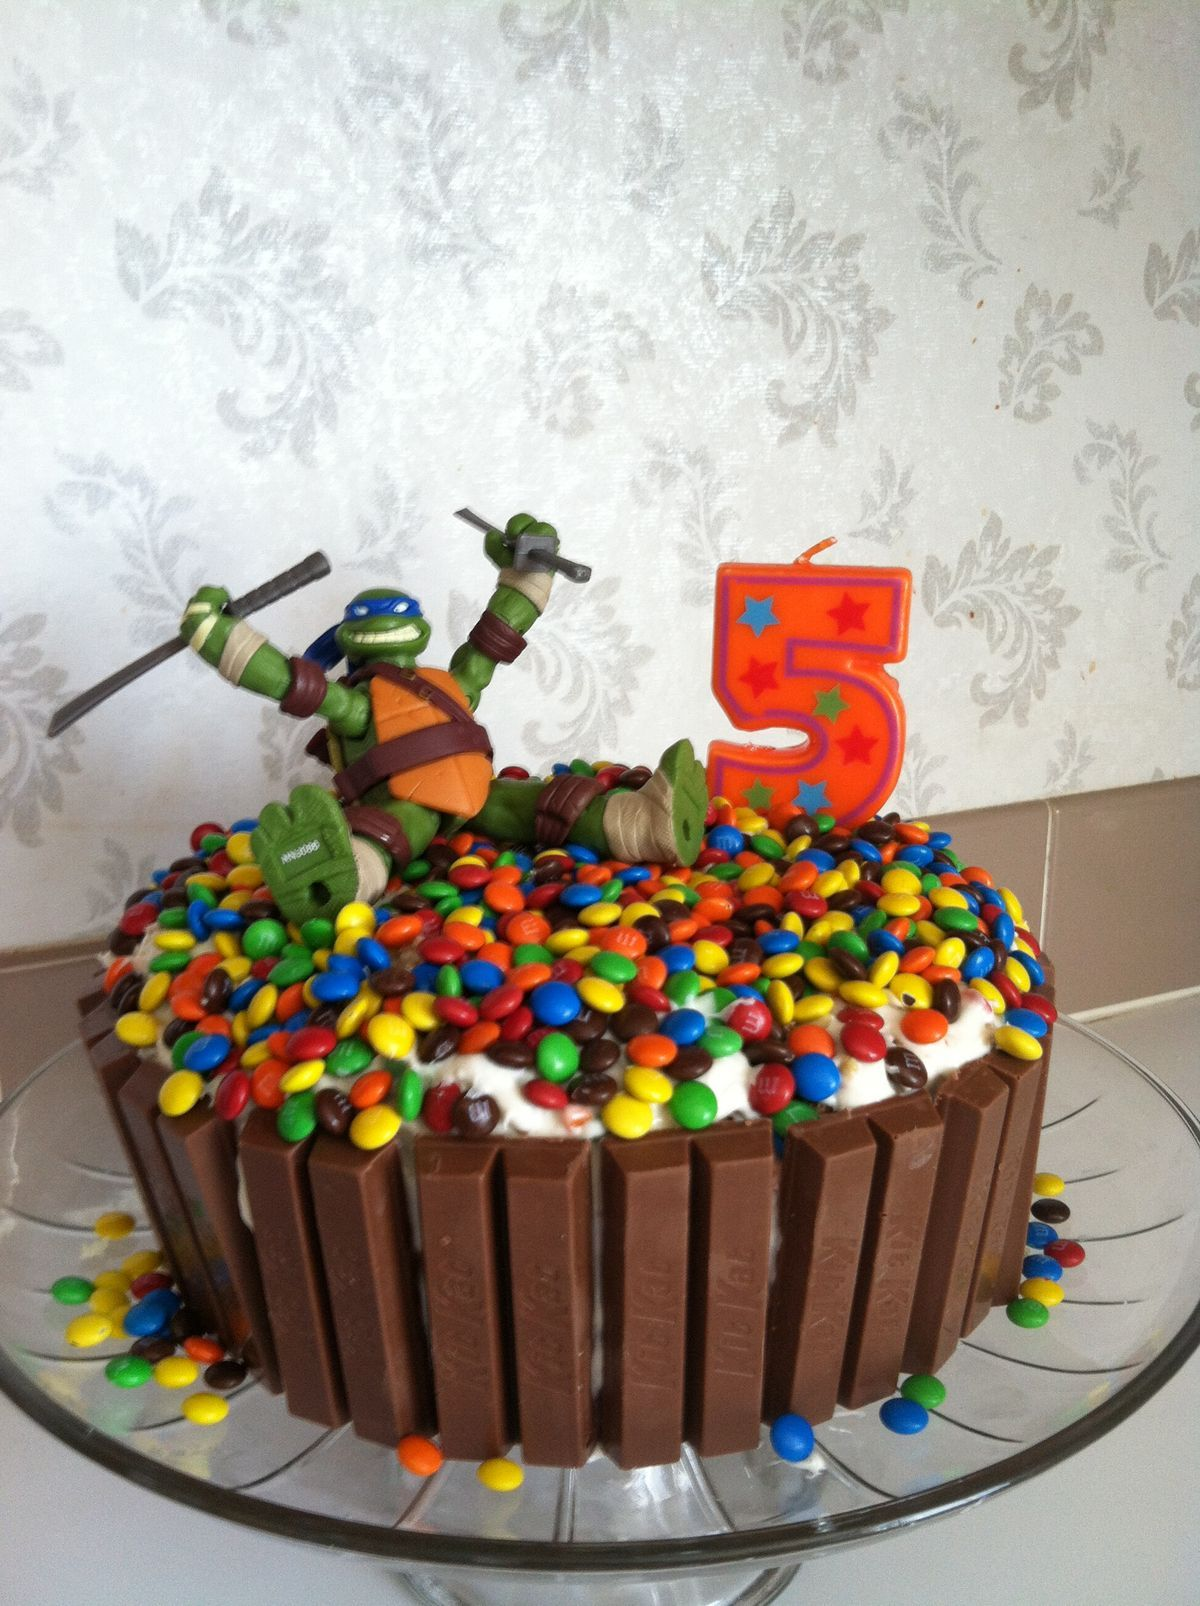 Pretty sure I can accomplish this one Just trow candy all over it